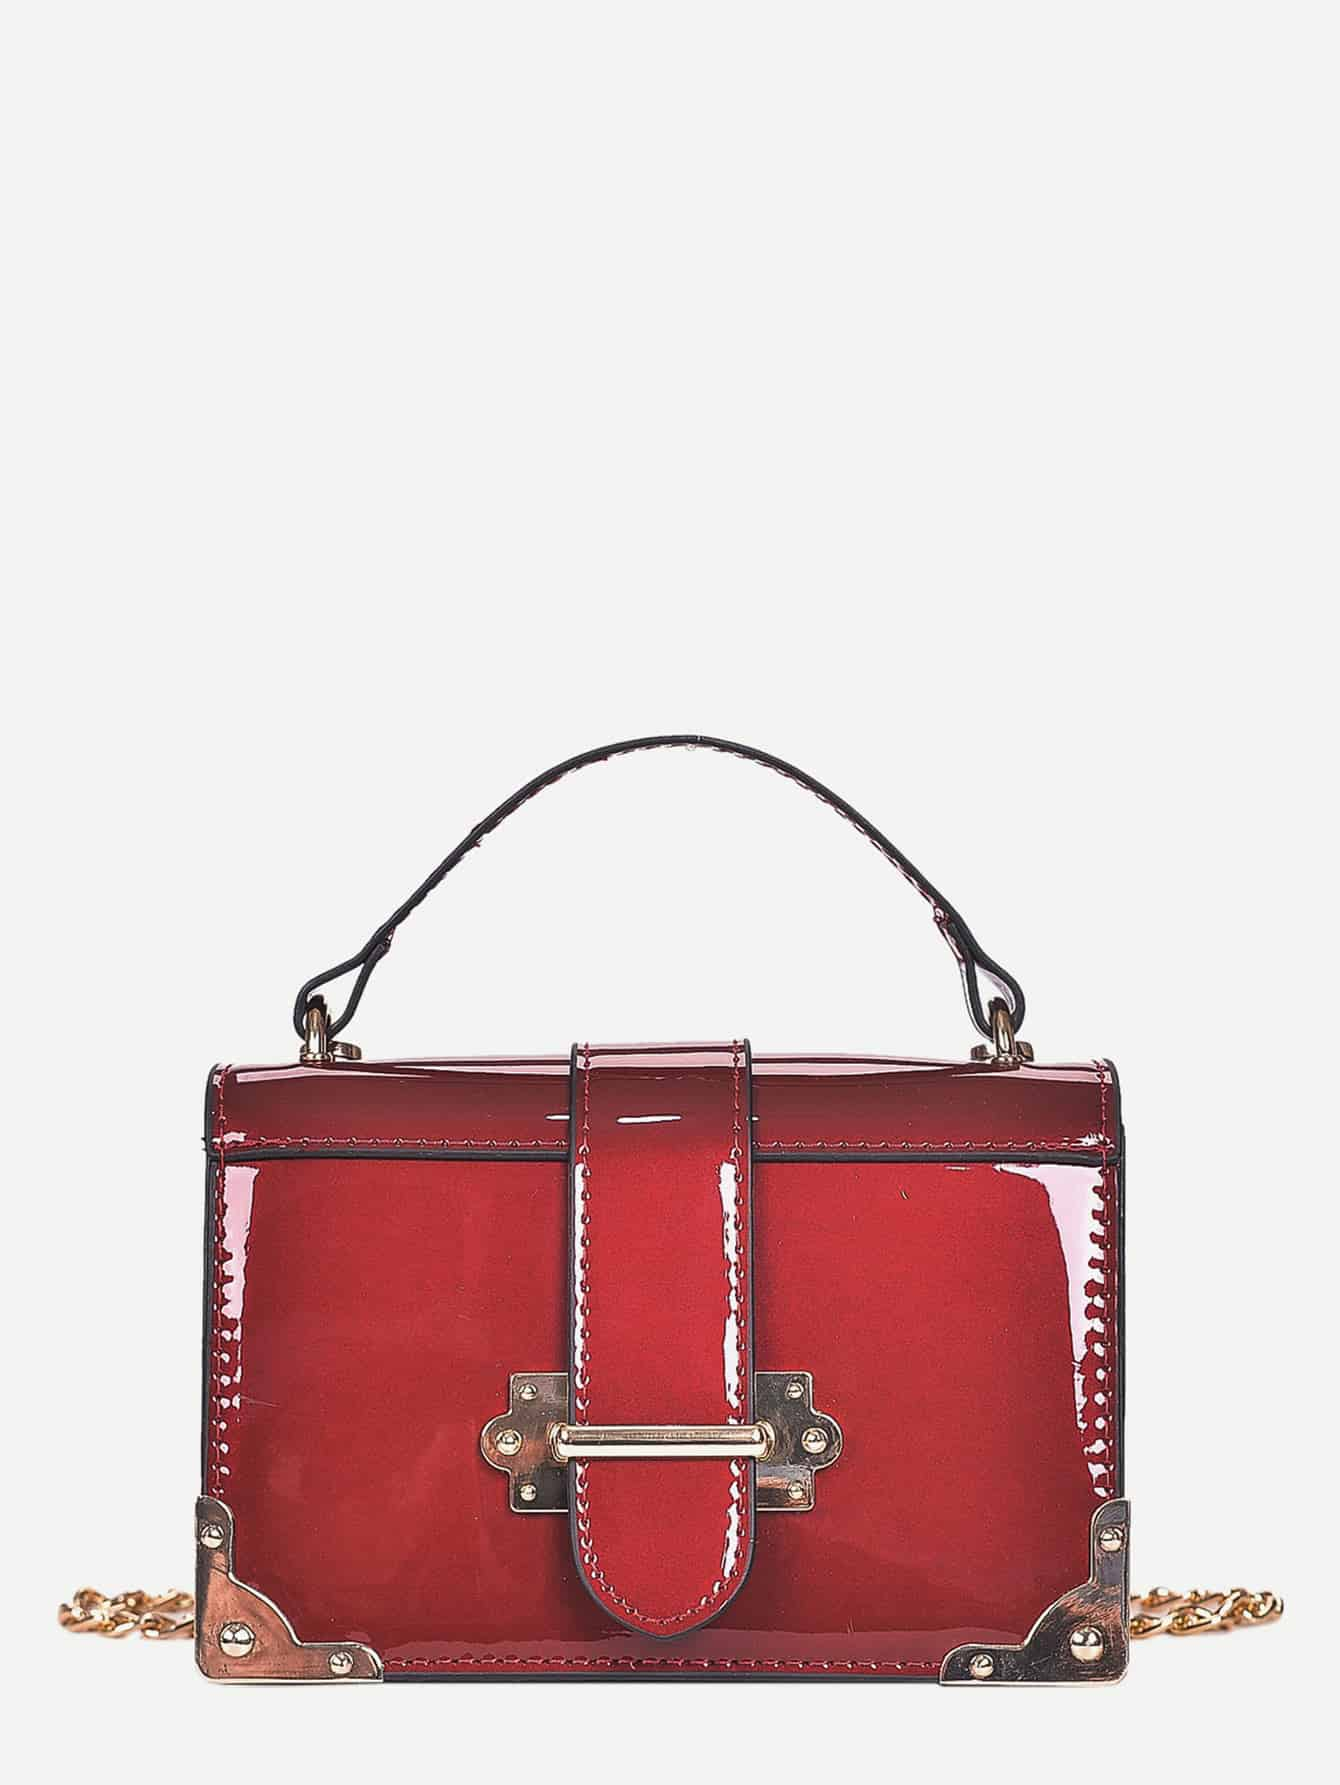 Patent Leather Buckle Decor Chain Bag